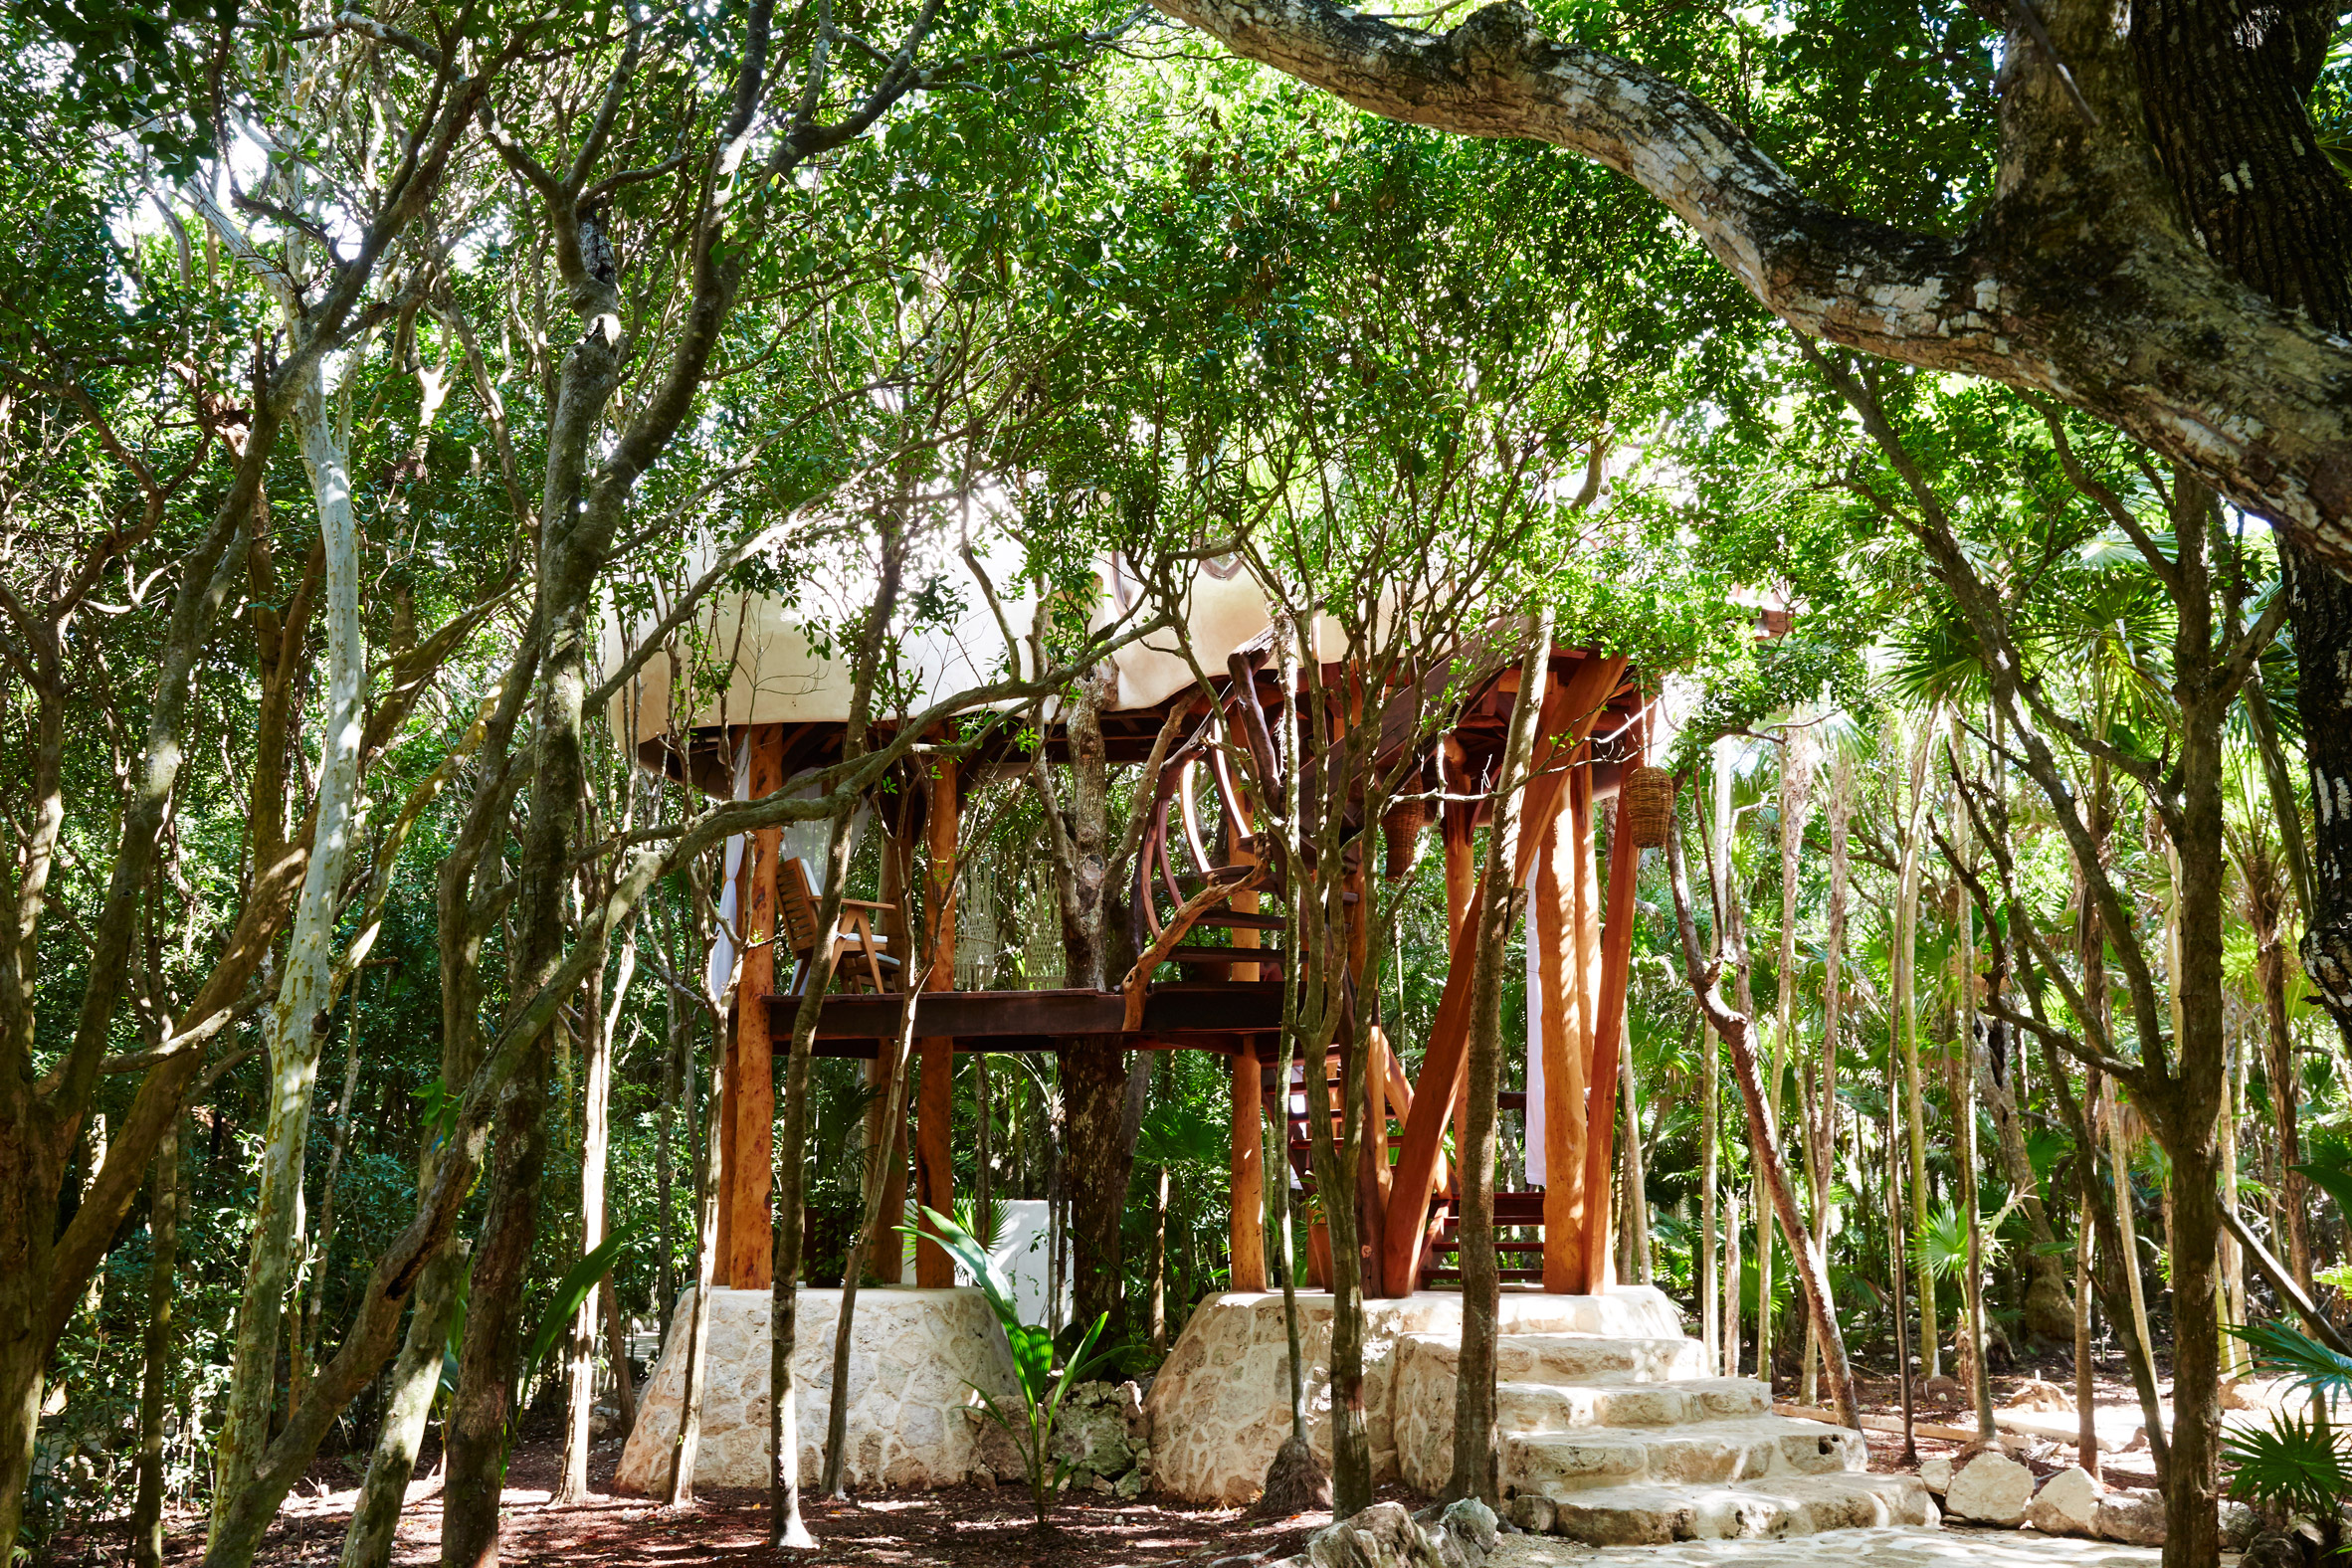 Treehouse hotel room peeps above canopy of Mexico's tropical woodland